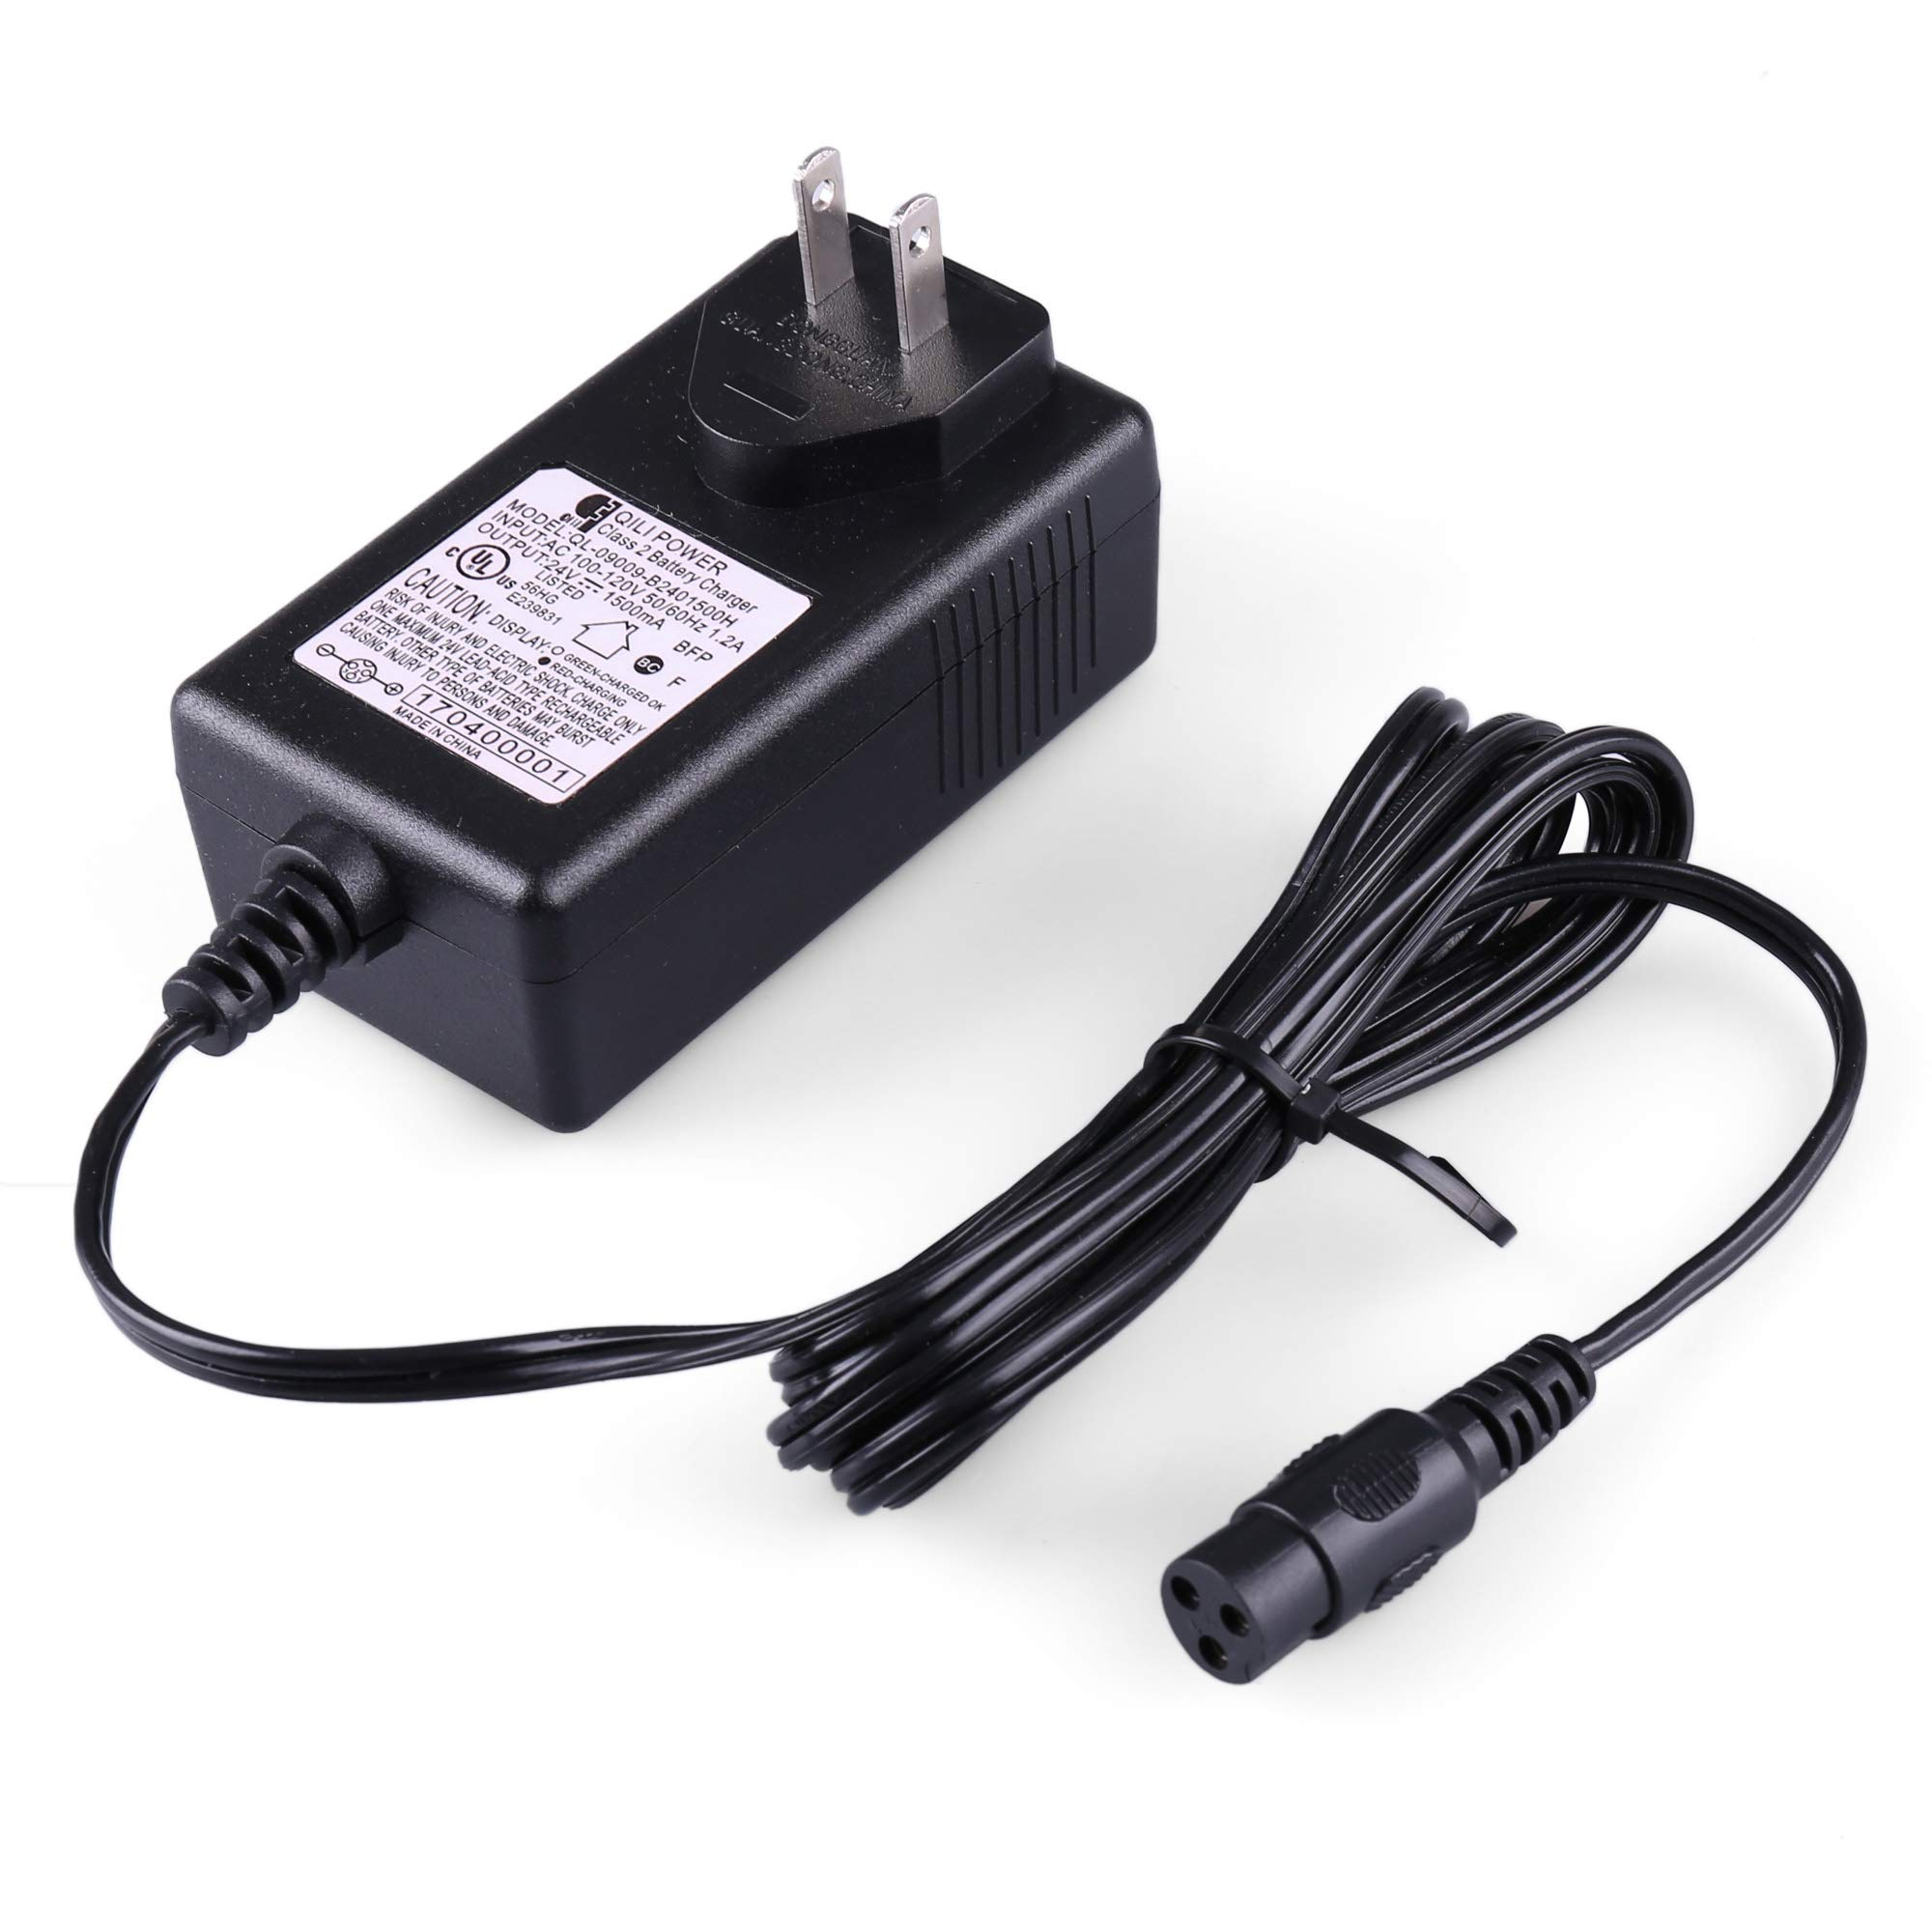 Razor Battery Charger for the e200, e300, PR200, Pocket Mod, Sports Mod, and Dirt Quad by Razor